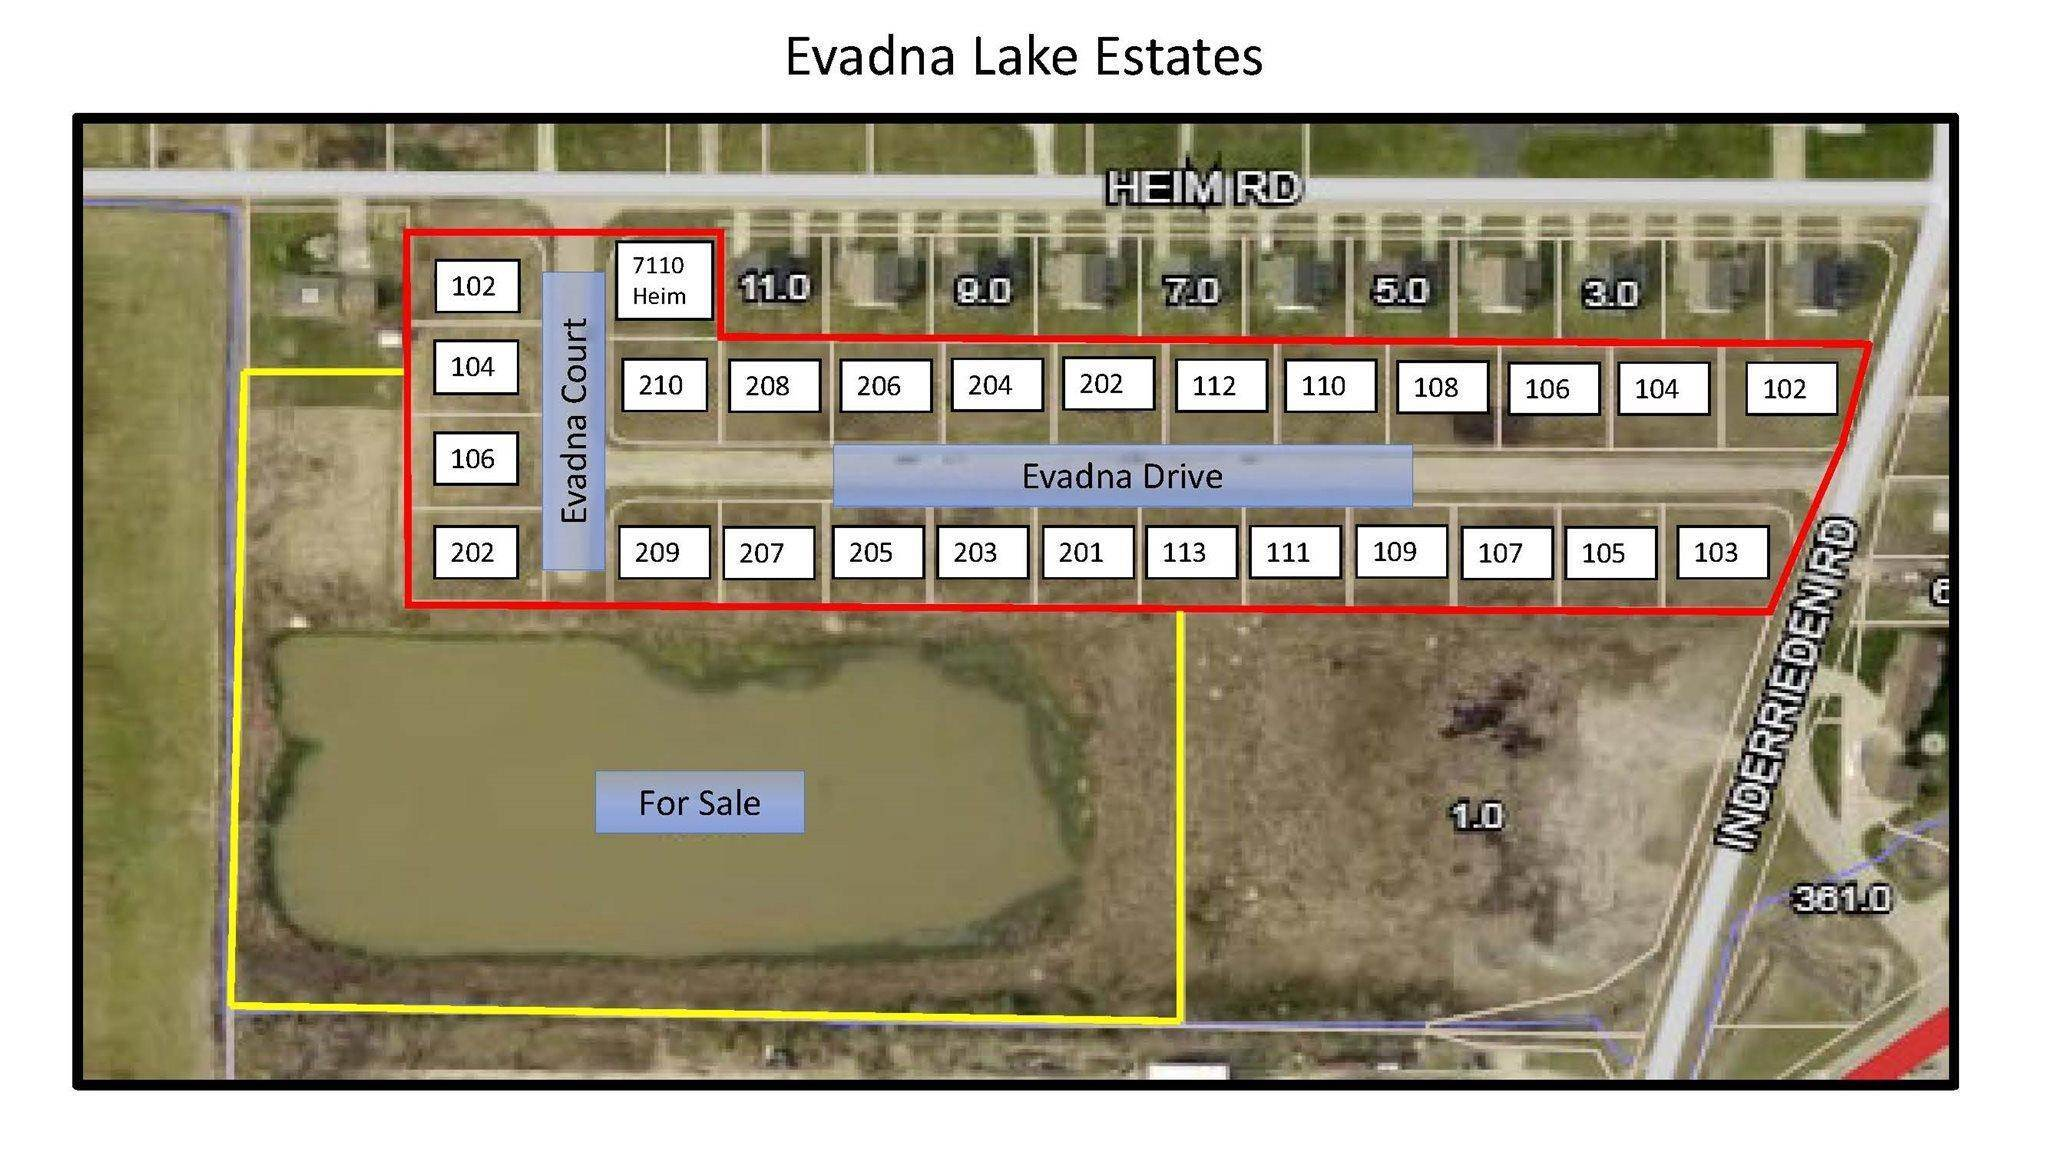 Residential Lots & Land for Sale at 104 Evadna Court Boonville, Indiana 47610 United States